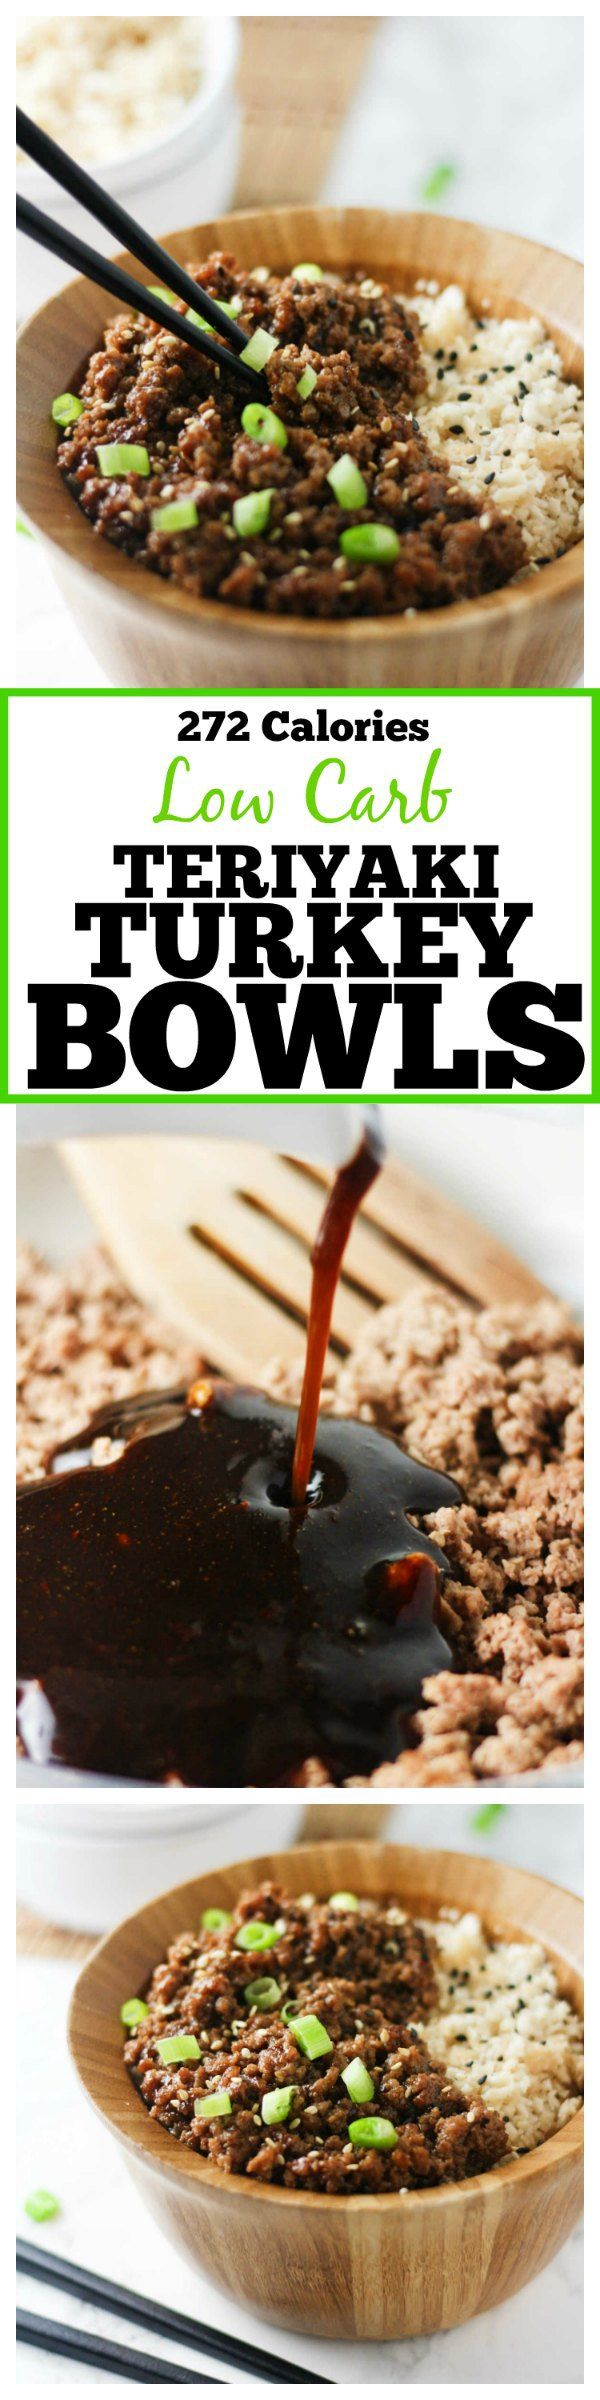 These delicious and easy Low Carb Teriyaki Turkey Bowls are ready in under 30 minutes and packed with tons of flavor! www.itscheatdayeveryday.com